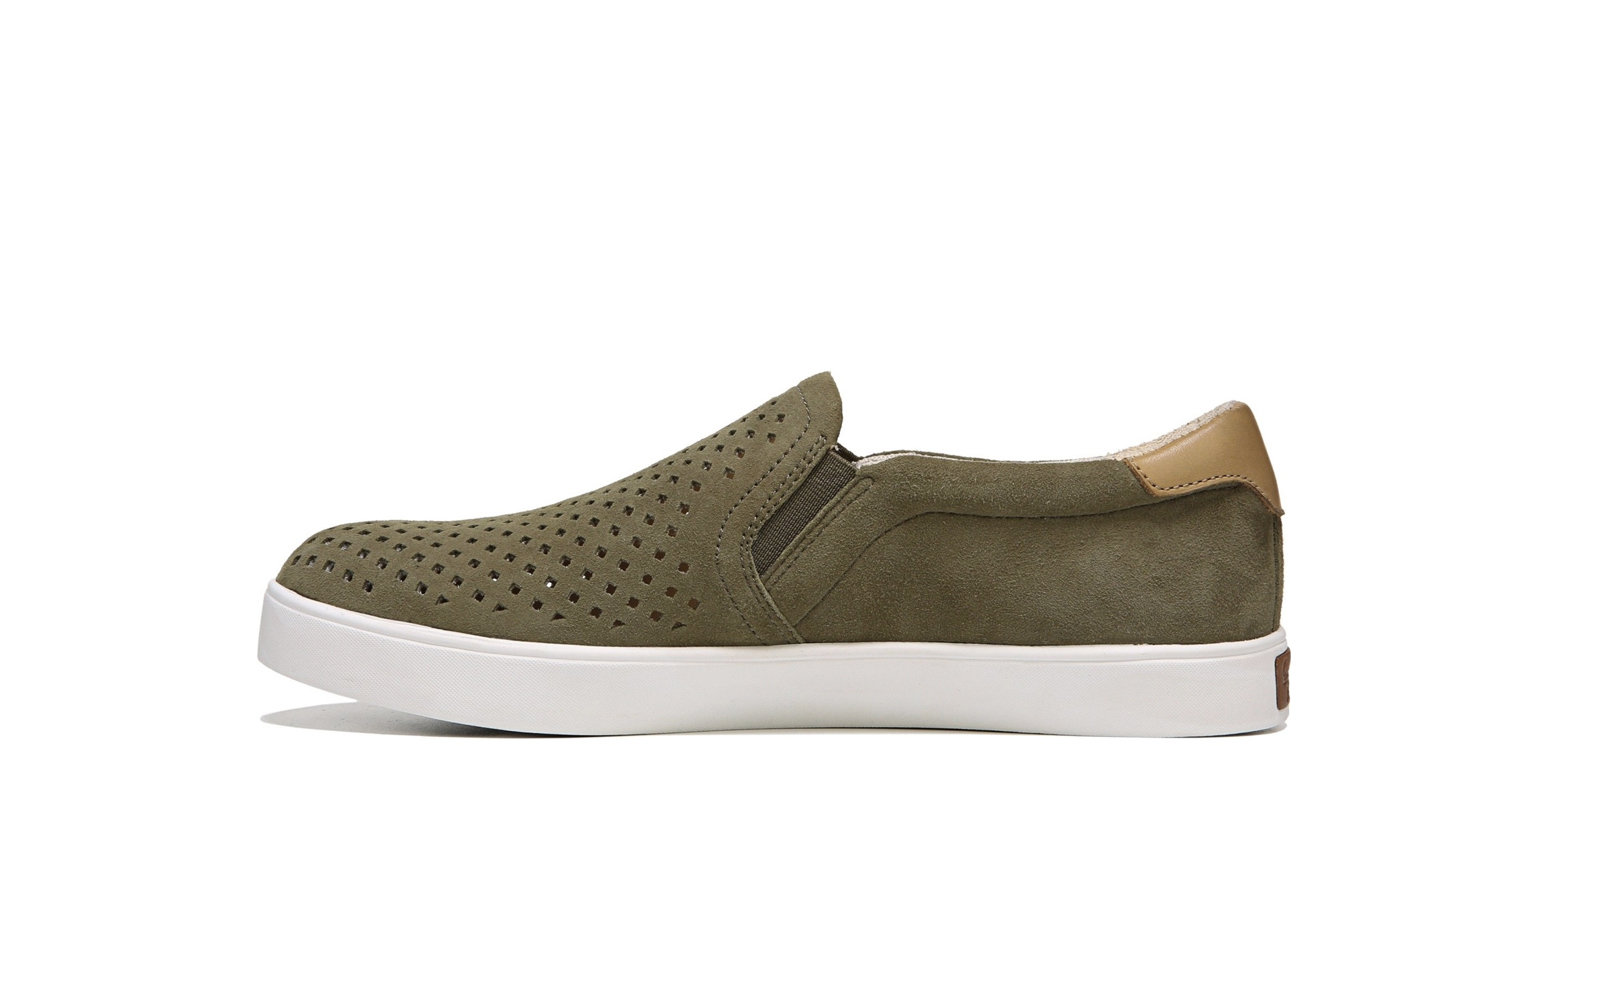 Easy Slip-on Shoes to Get You Through Airport Security Faster